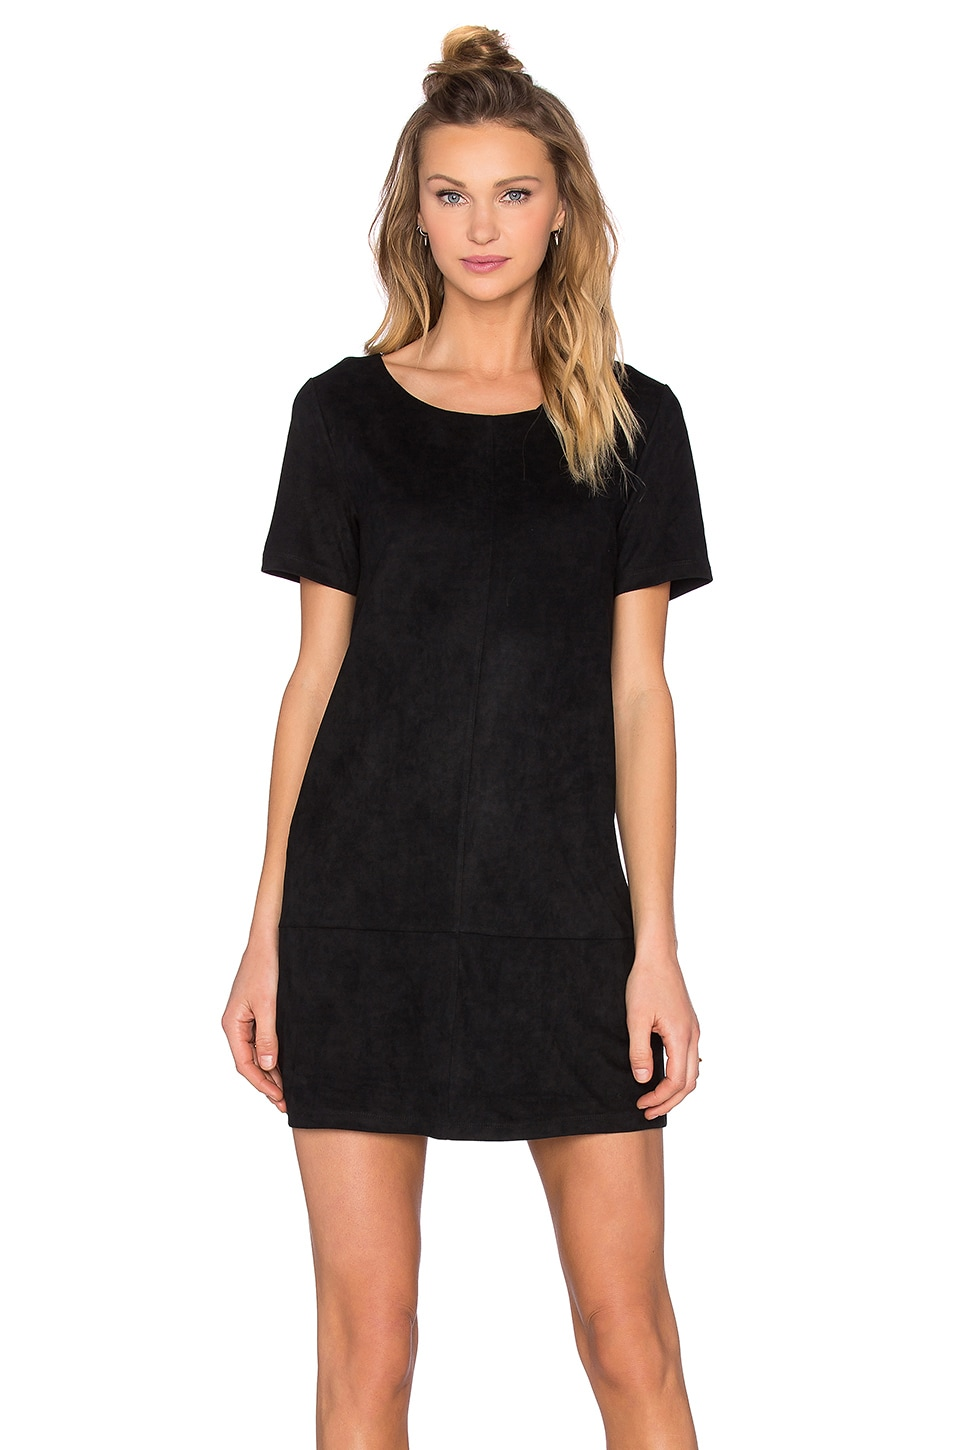 Bishop + Young Suede Dress in Black